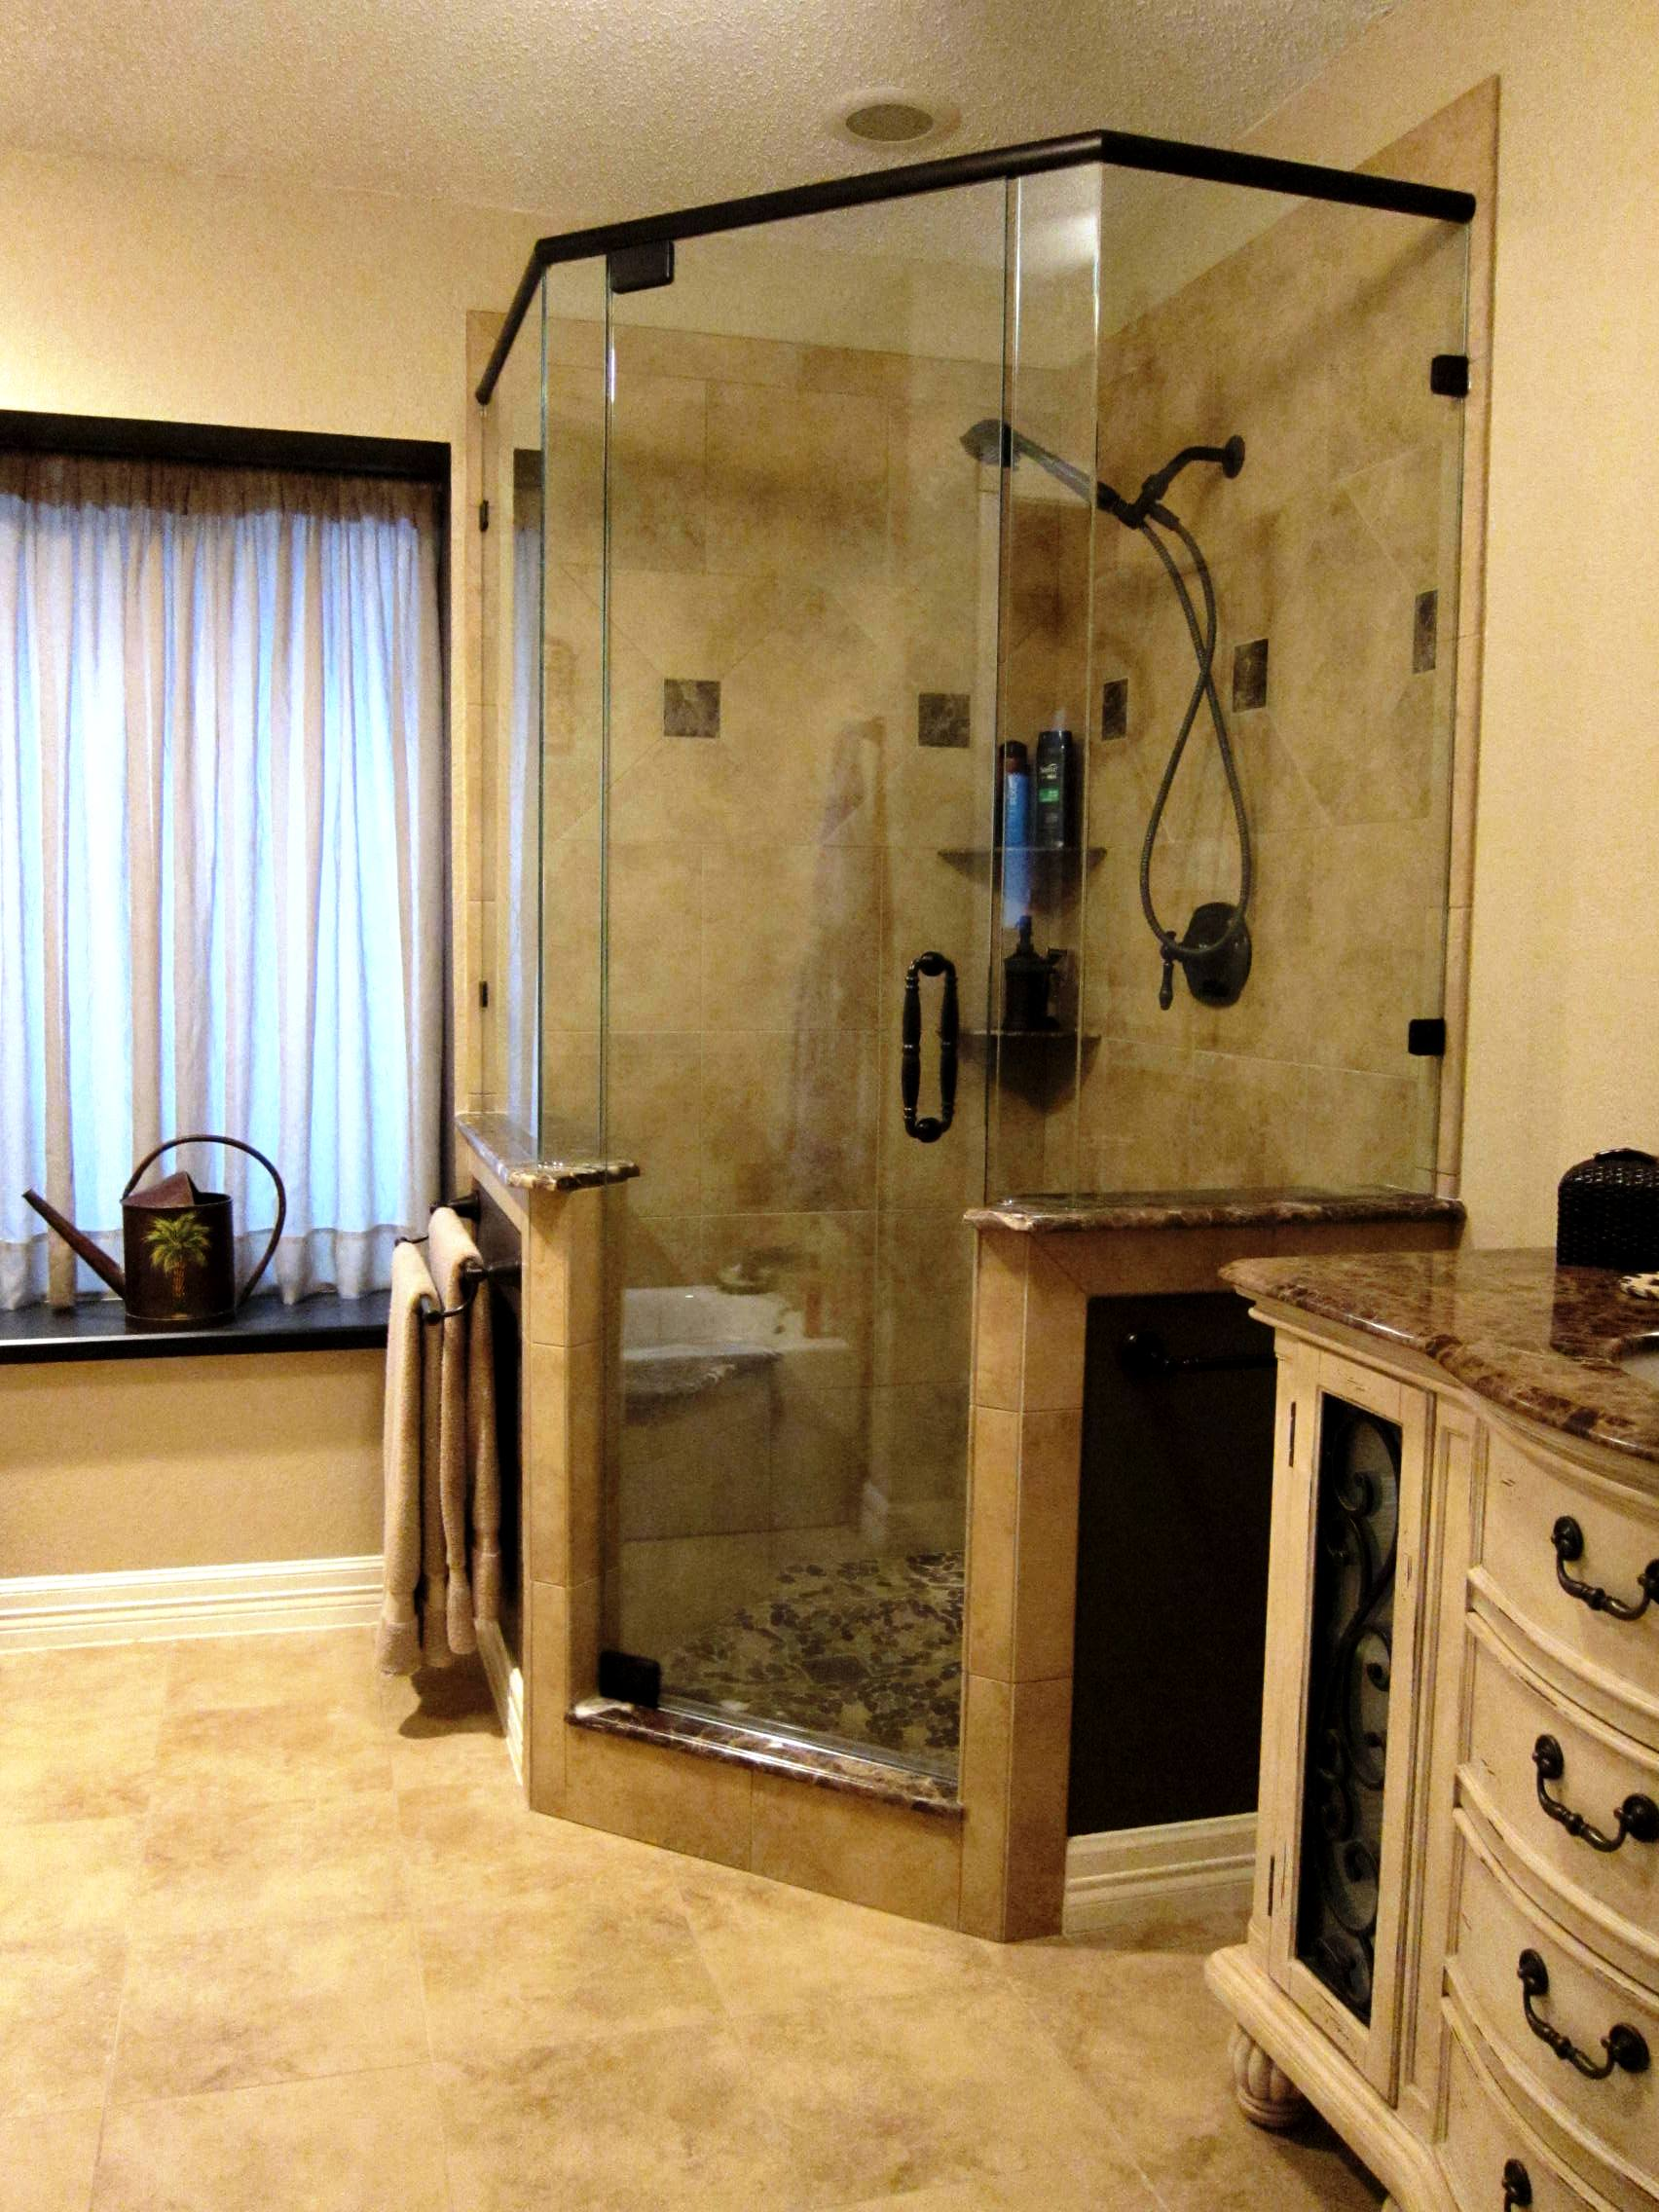 Typical Bathroom Remodel Cost In Texas Images Frompo